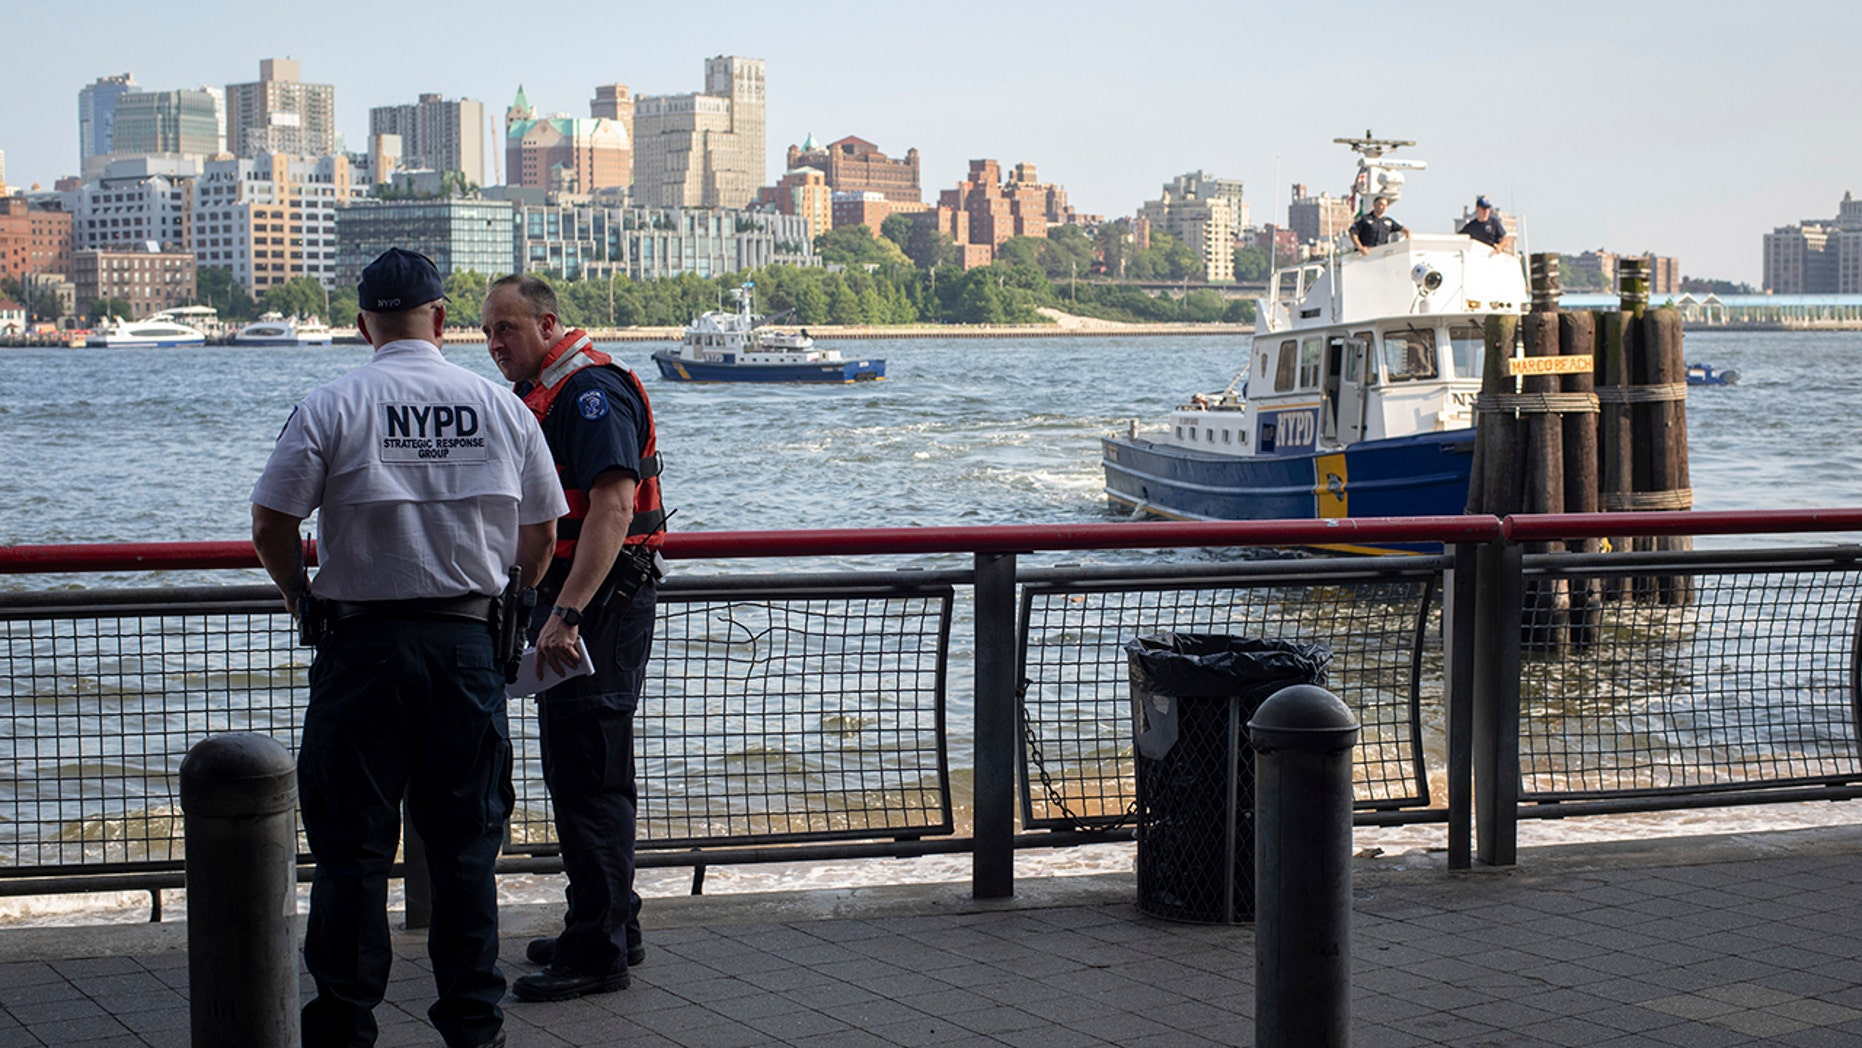 Authorities investigate the death of a baby boy who was found floating in the water near the Brooklyn Bridge in Manhattan.